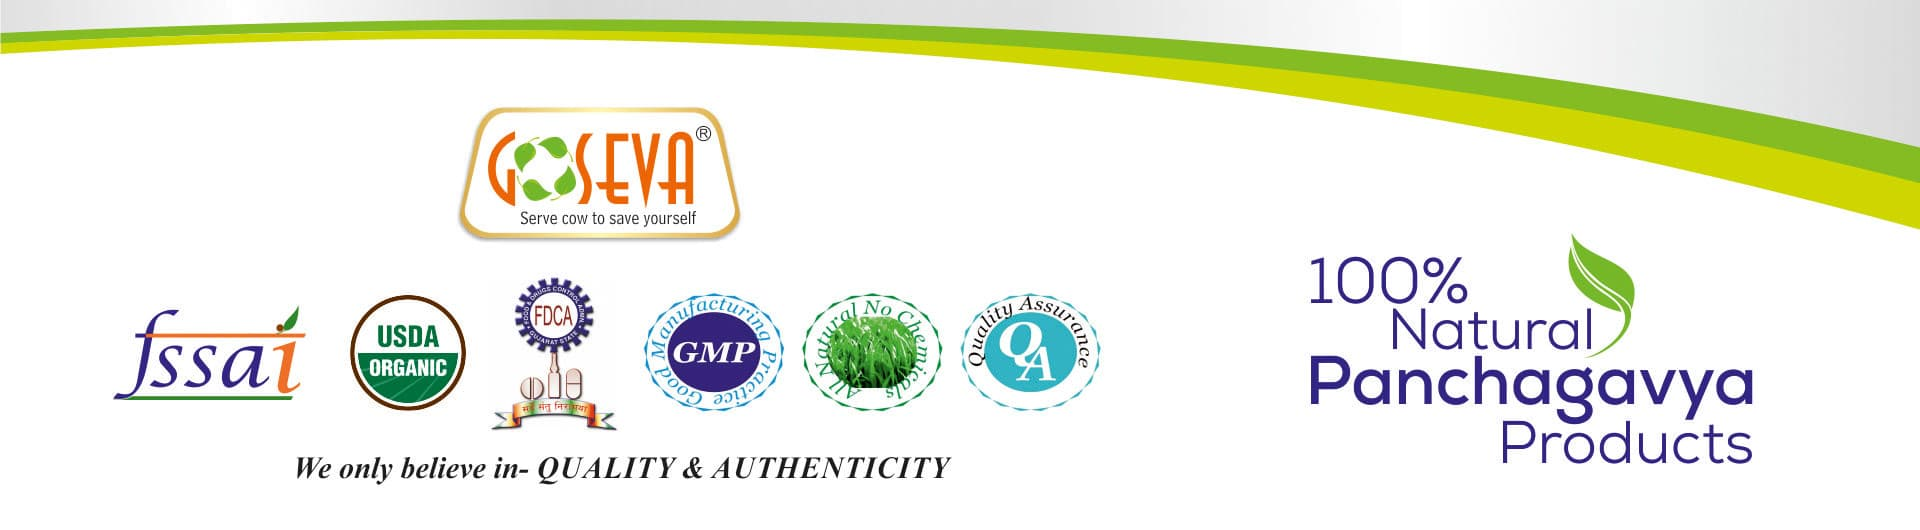 Quality and Authenticity Products